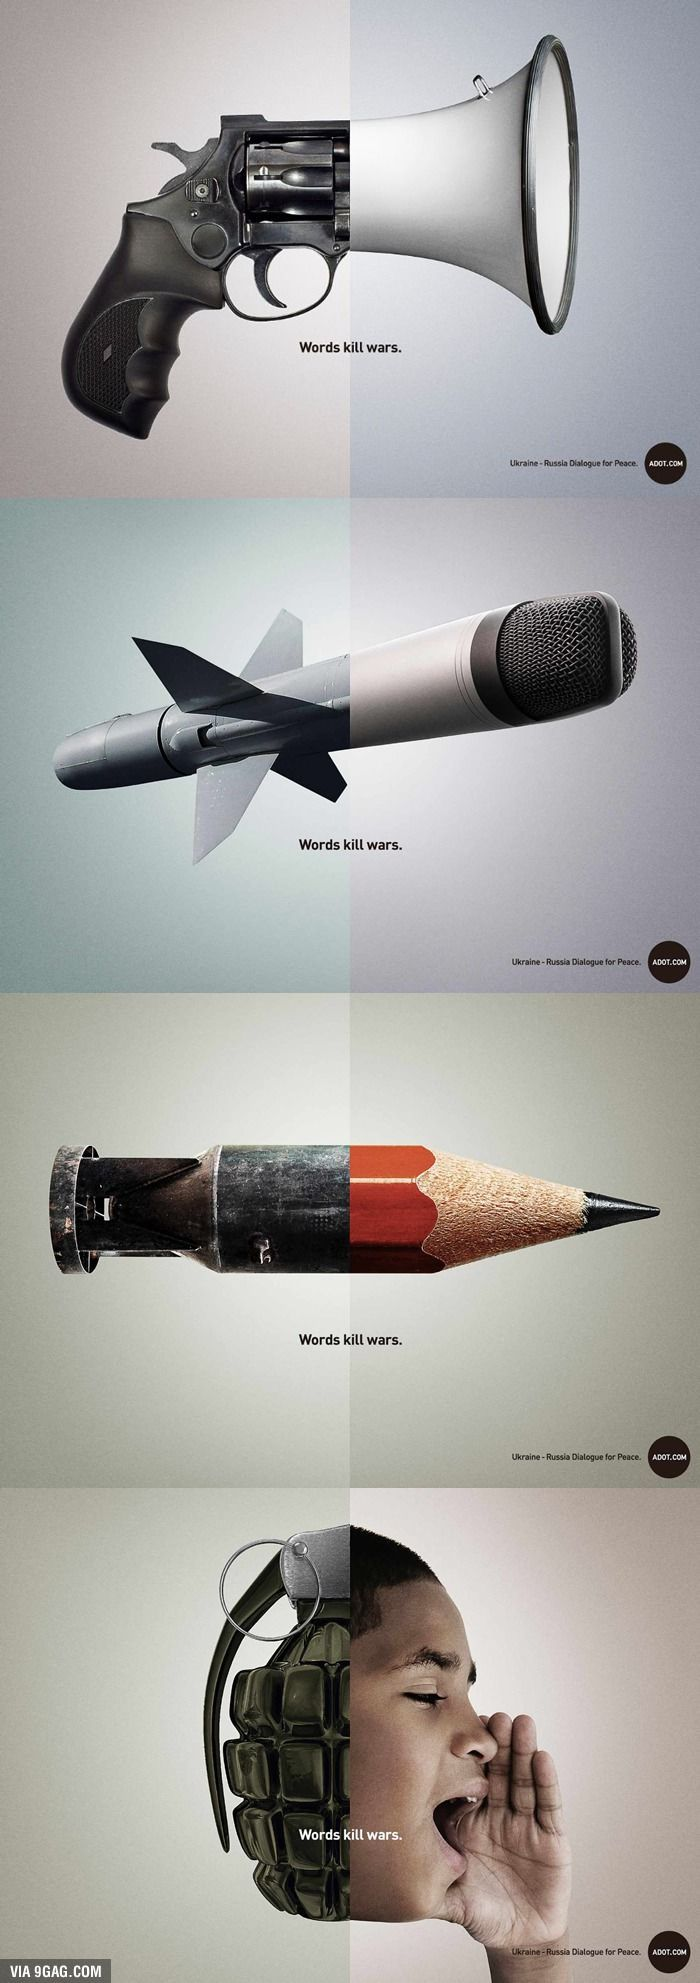 This ad promotes talking about issues instead of resorting to violence. It transforms weapons into tools that are used to speak.: